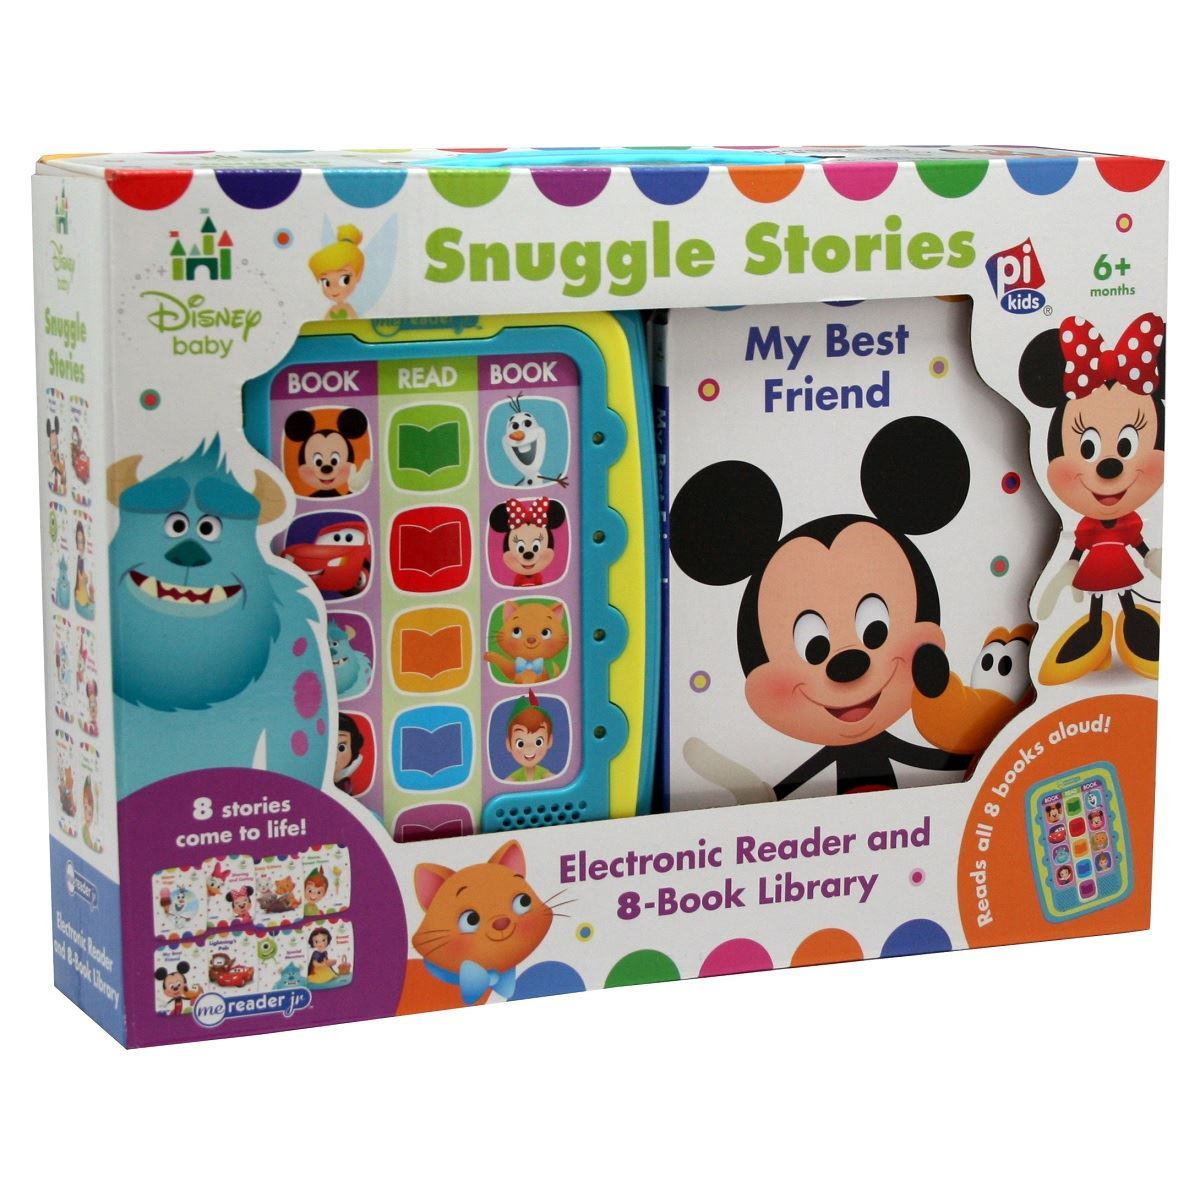 Disney Baby: Snuggle Stories